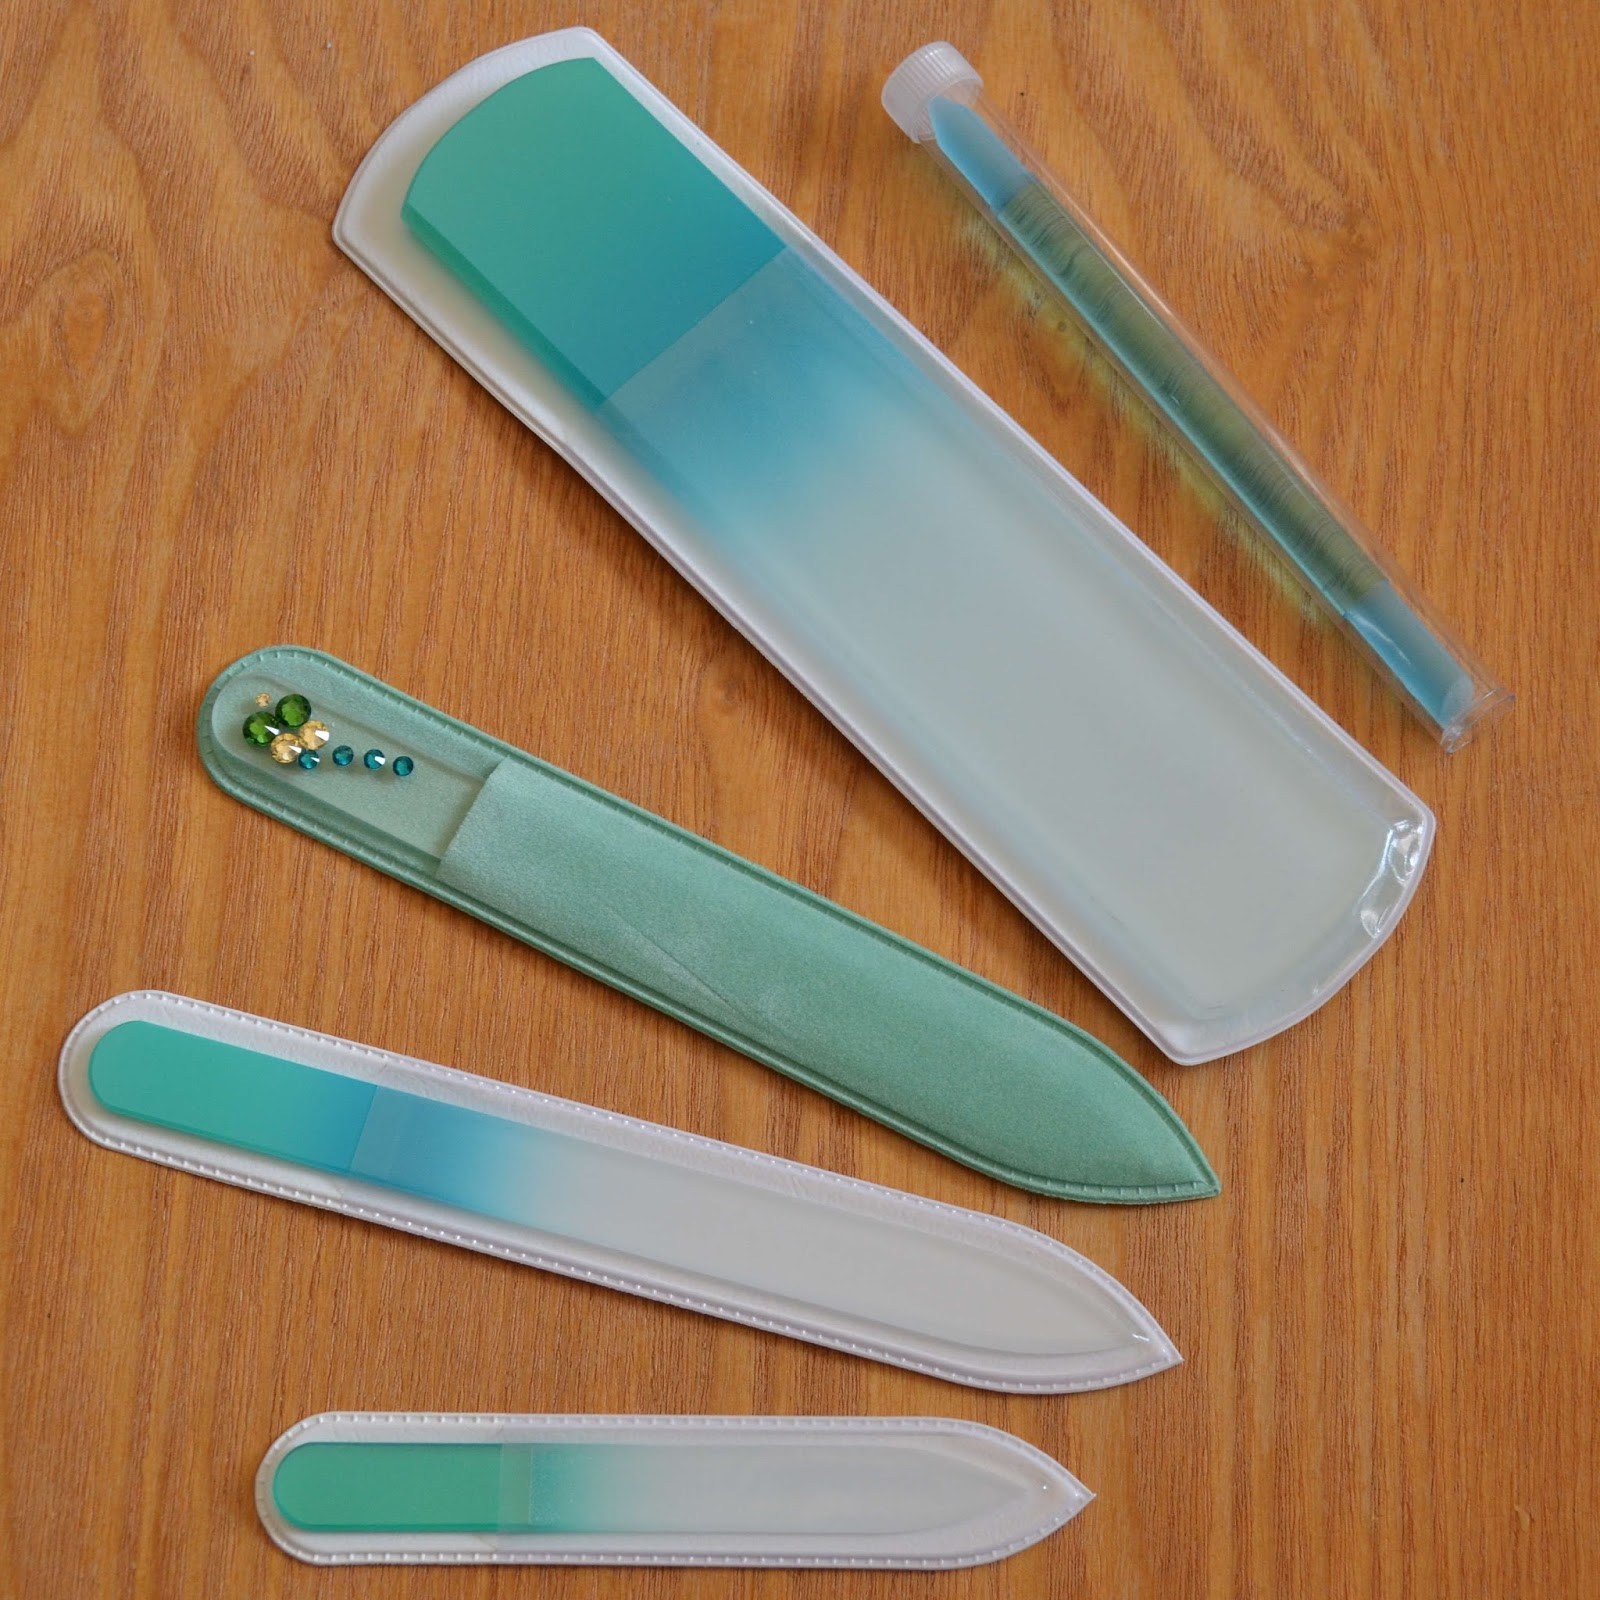 Malva Belle Premium Glass Nail File, $10, Amazon. Malva Belle's premium nail file features double-sided etching on a nonporous, hardened glass with a grit that works on both natural and acrylic nails. At about an eighth-of-an-inch thick and less than six inches tall, this file can easily fit into your tiniest clutch.